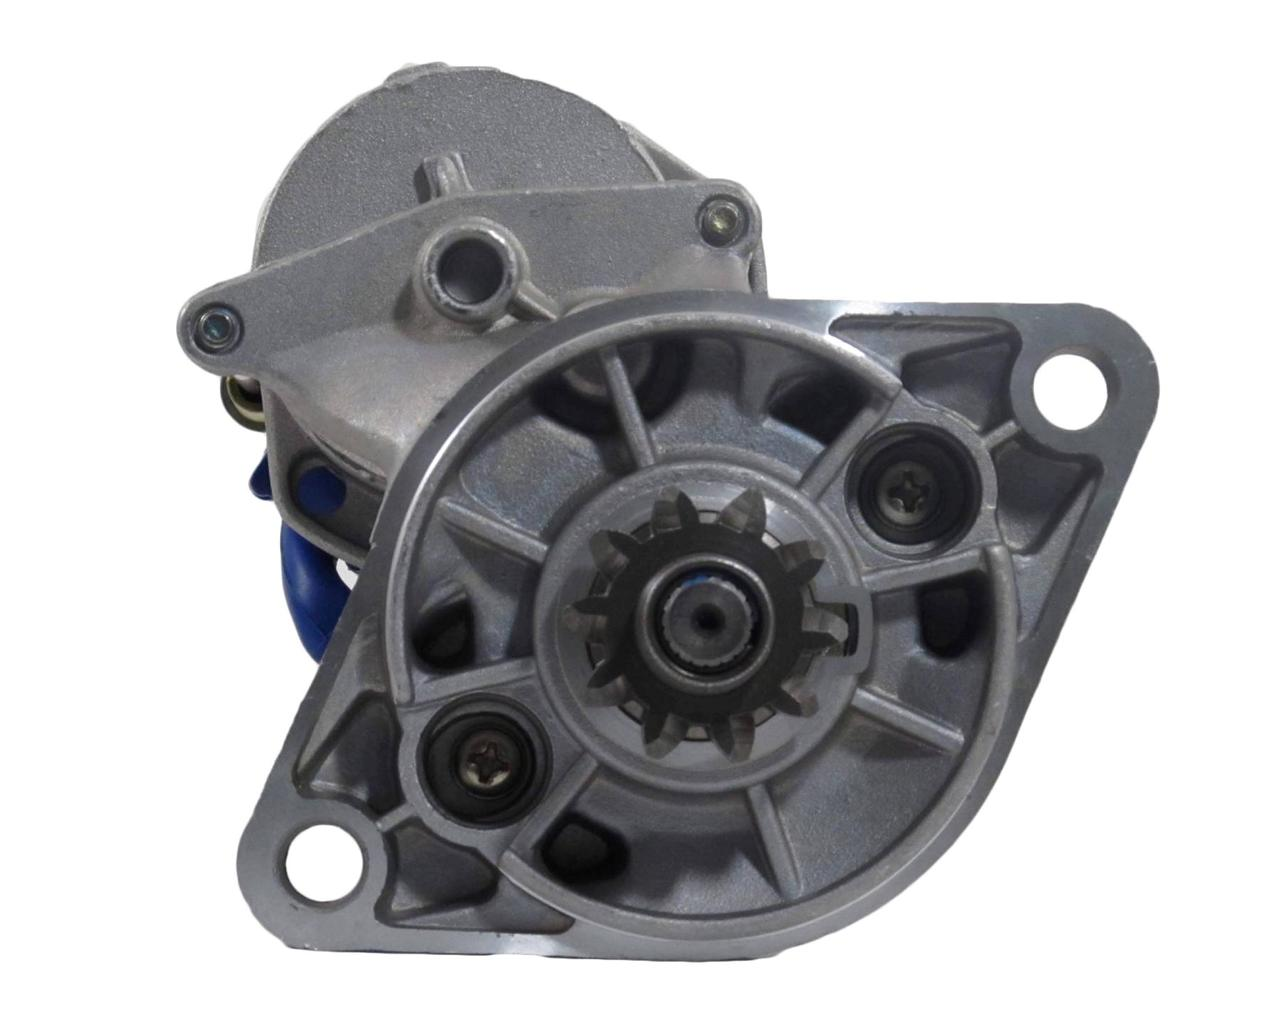 GEAR REDUCTION STARTER FITS JAGUAR MARK SERIES XK150 XKE 104 TOOTH FLY WHEEL